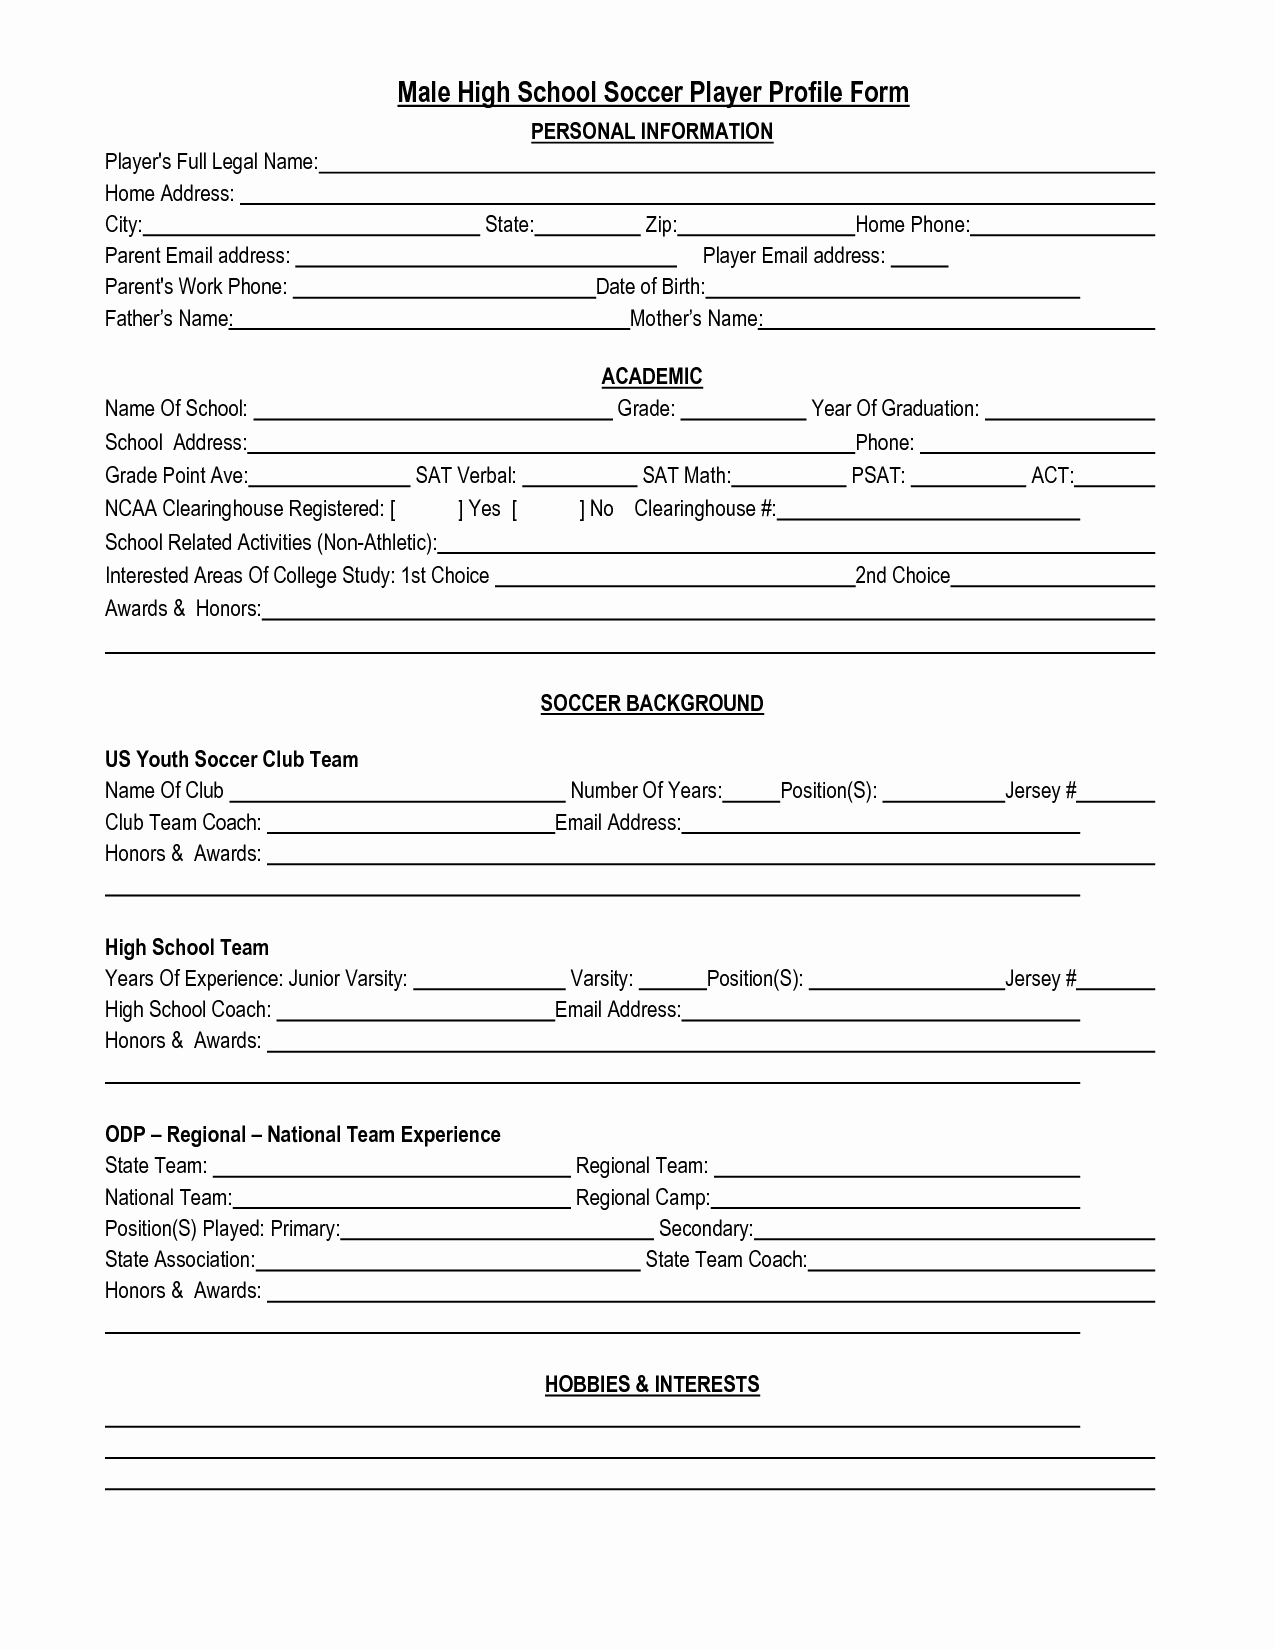 Soccer Players Profile Template Awesome Best S Of High School Player Profile Template